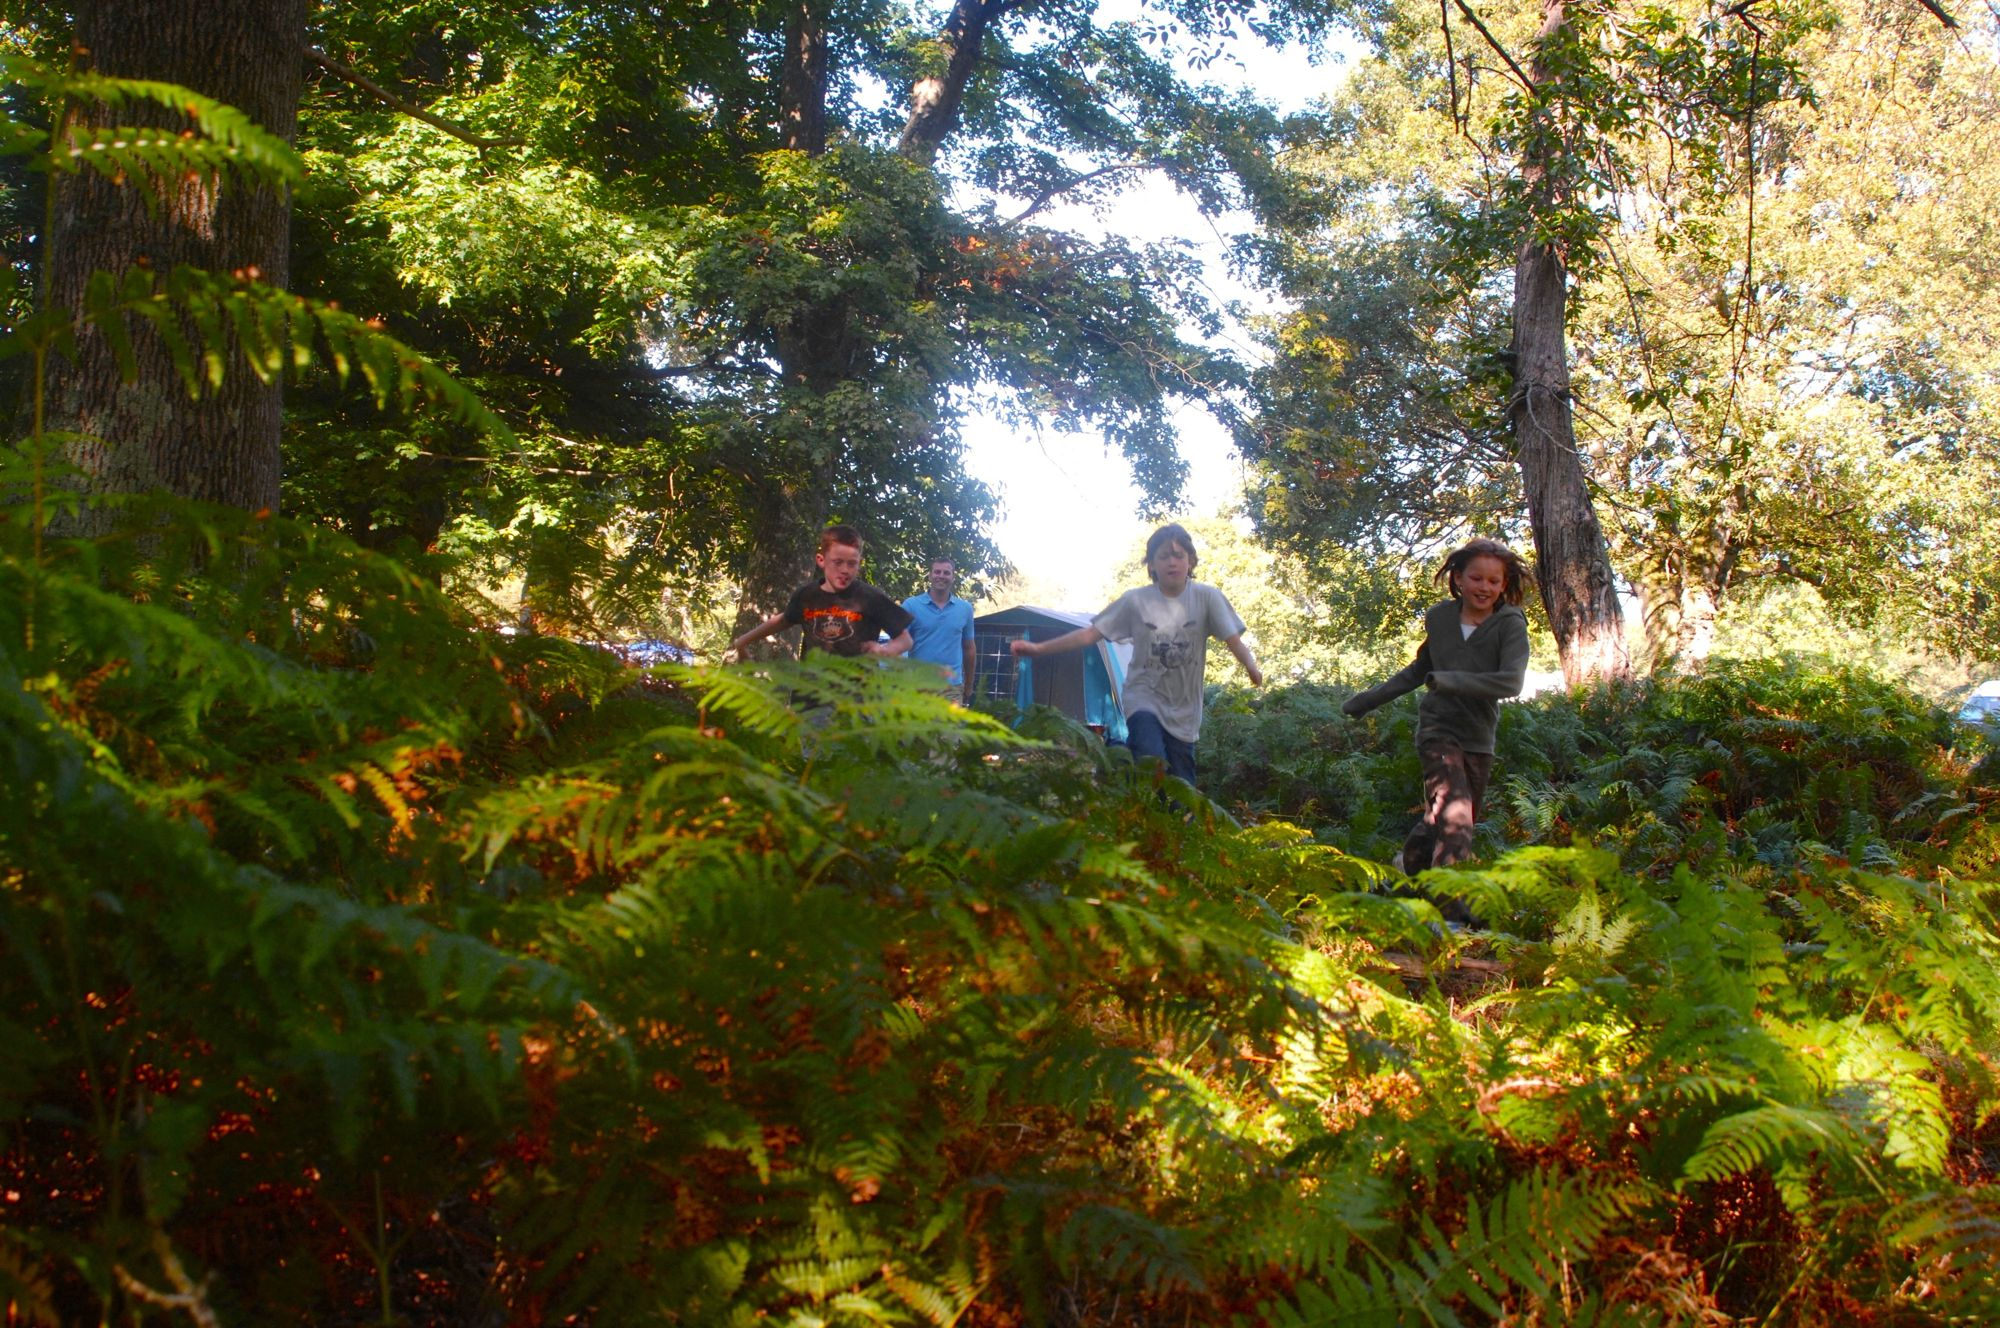 Nearly Wild Campsites – Wild Camping Campsites in the UK